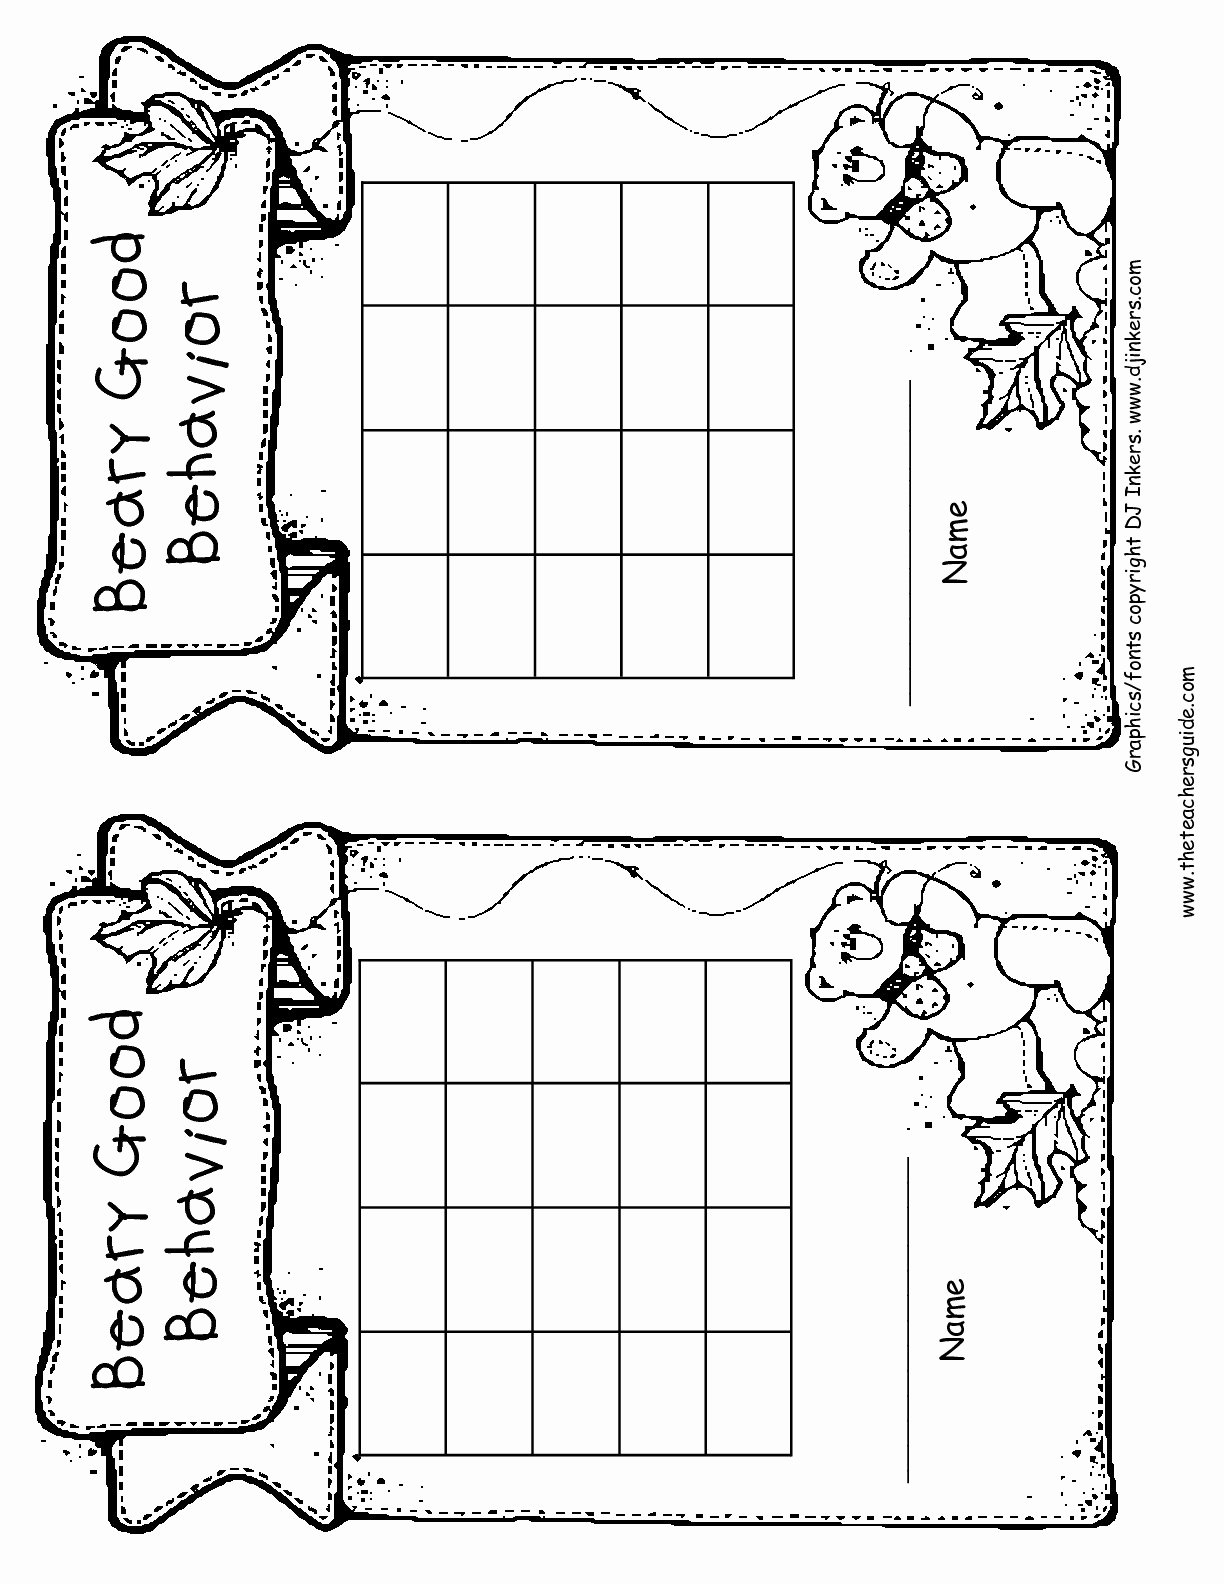 Classroom Behavior Chart Template Lovely Free Printable Reward and Incentive Charts